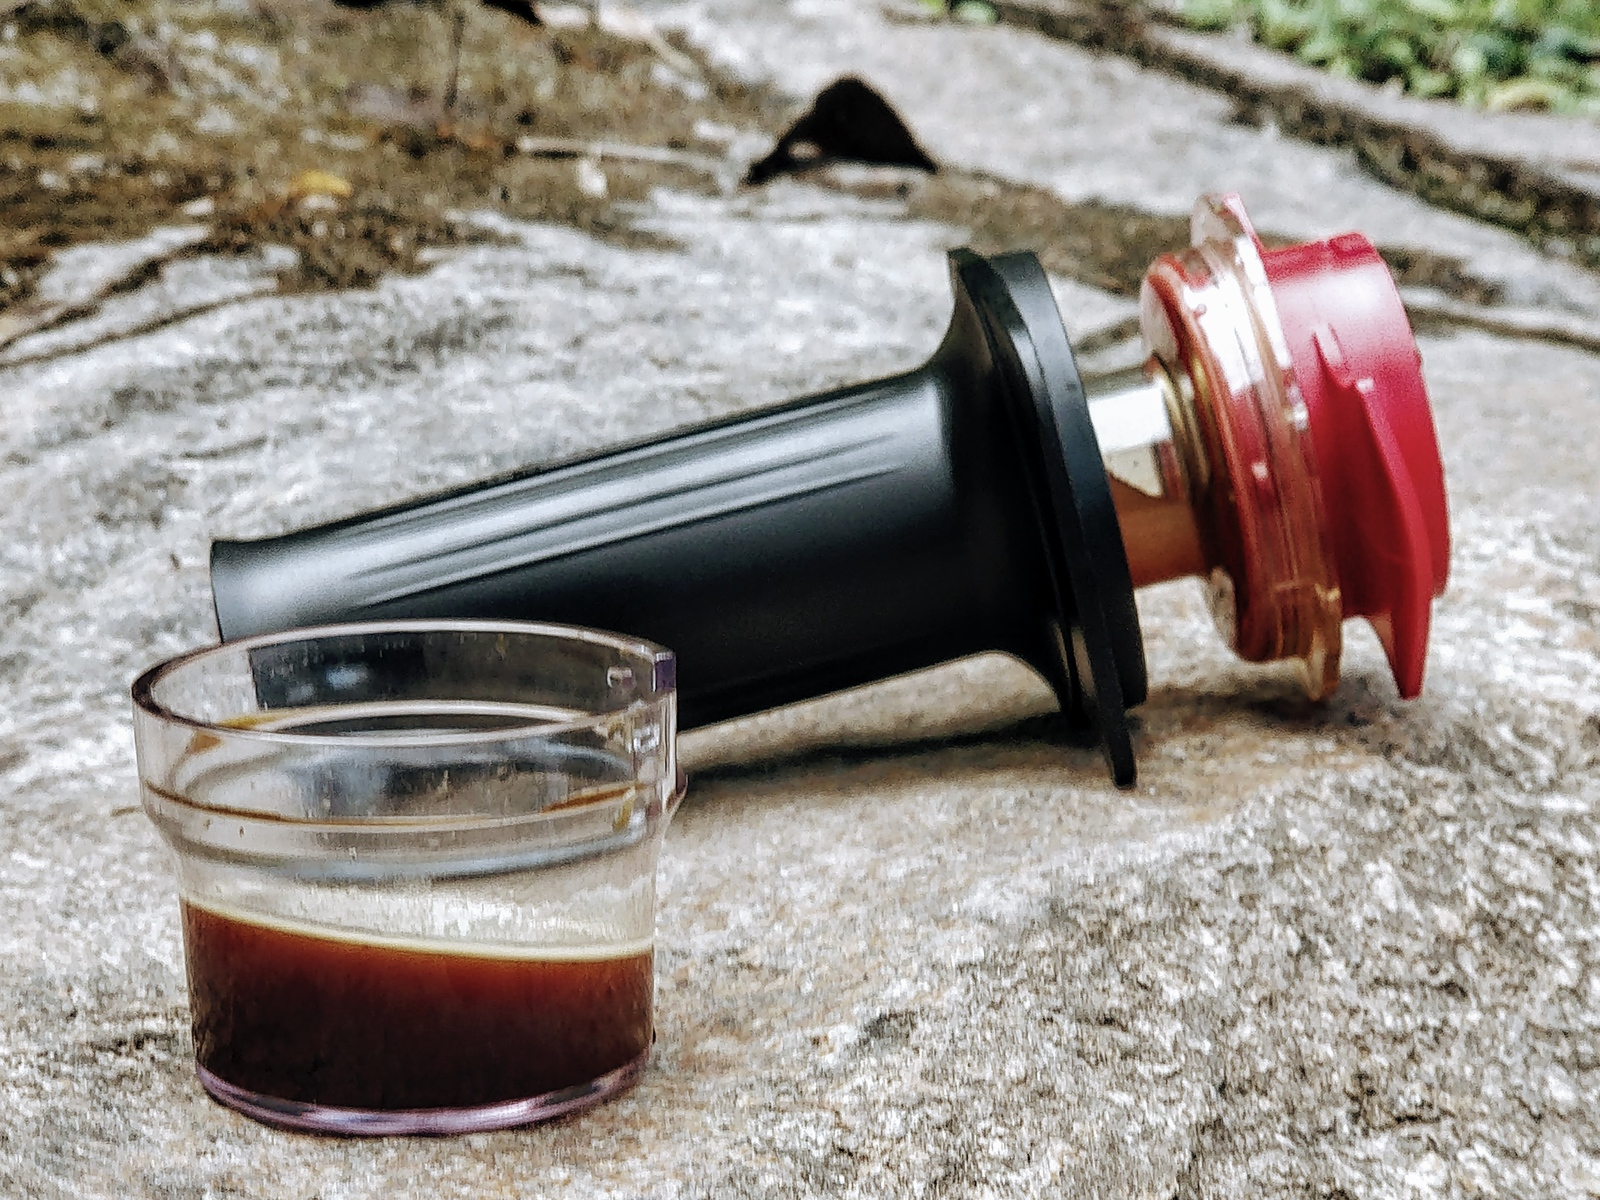 Best Travel Coffee Maker: Brewing Coffee on the Road